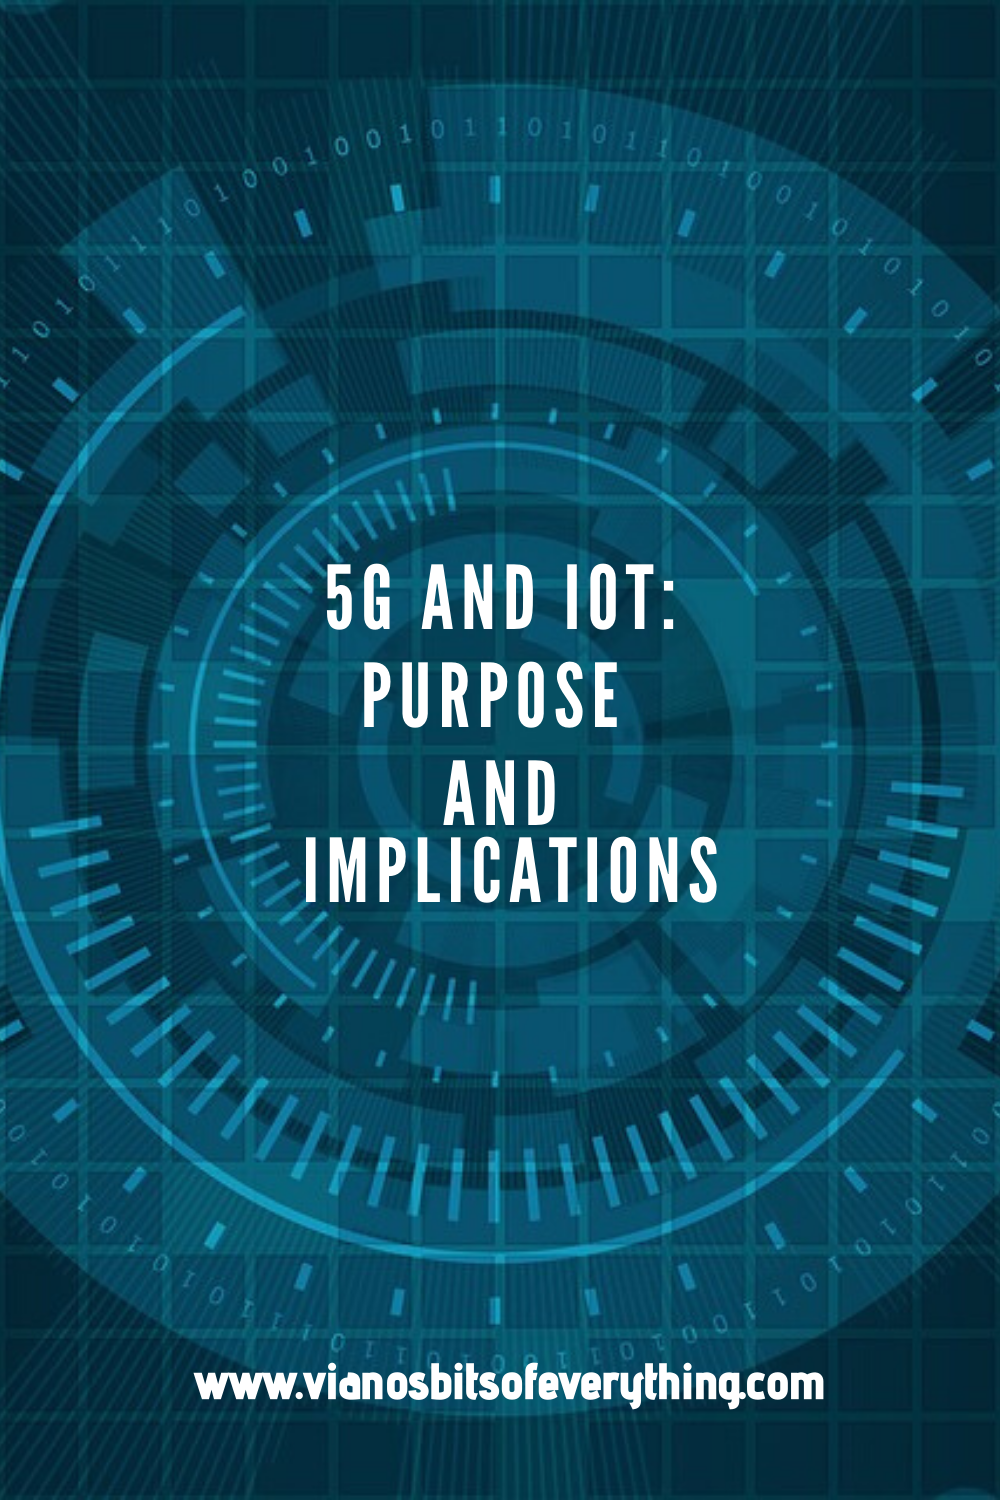 5G and IoT: Purpose and Implications